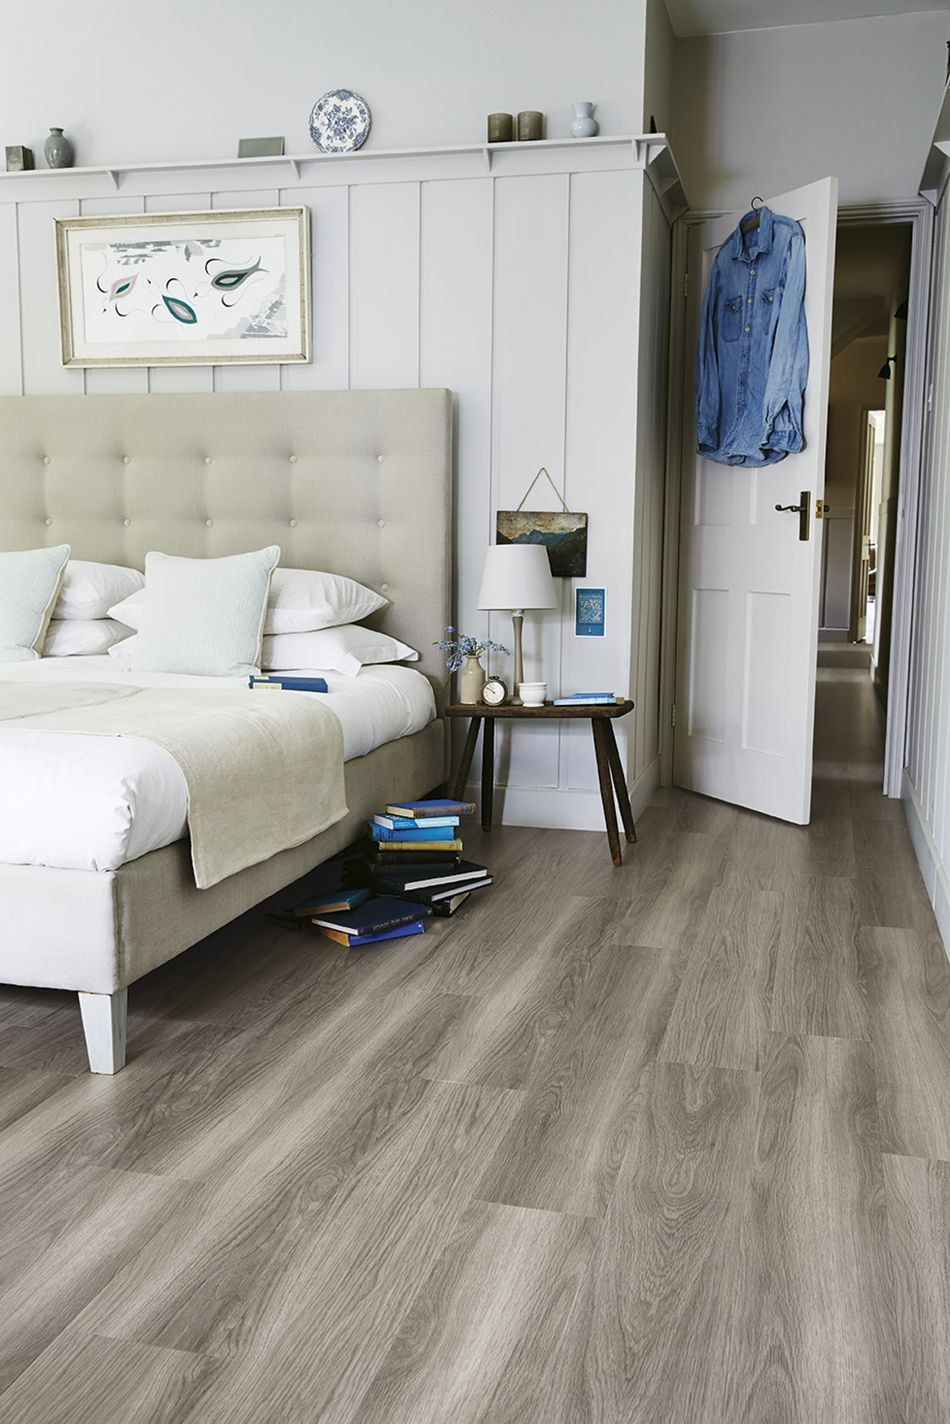 Bedroom Floor Tiles Design A Light And Bright Modern Bedroom With Lvt Wood Effect Flooring